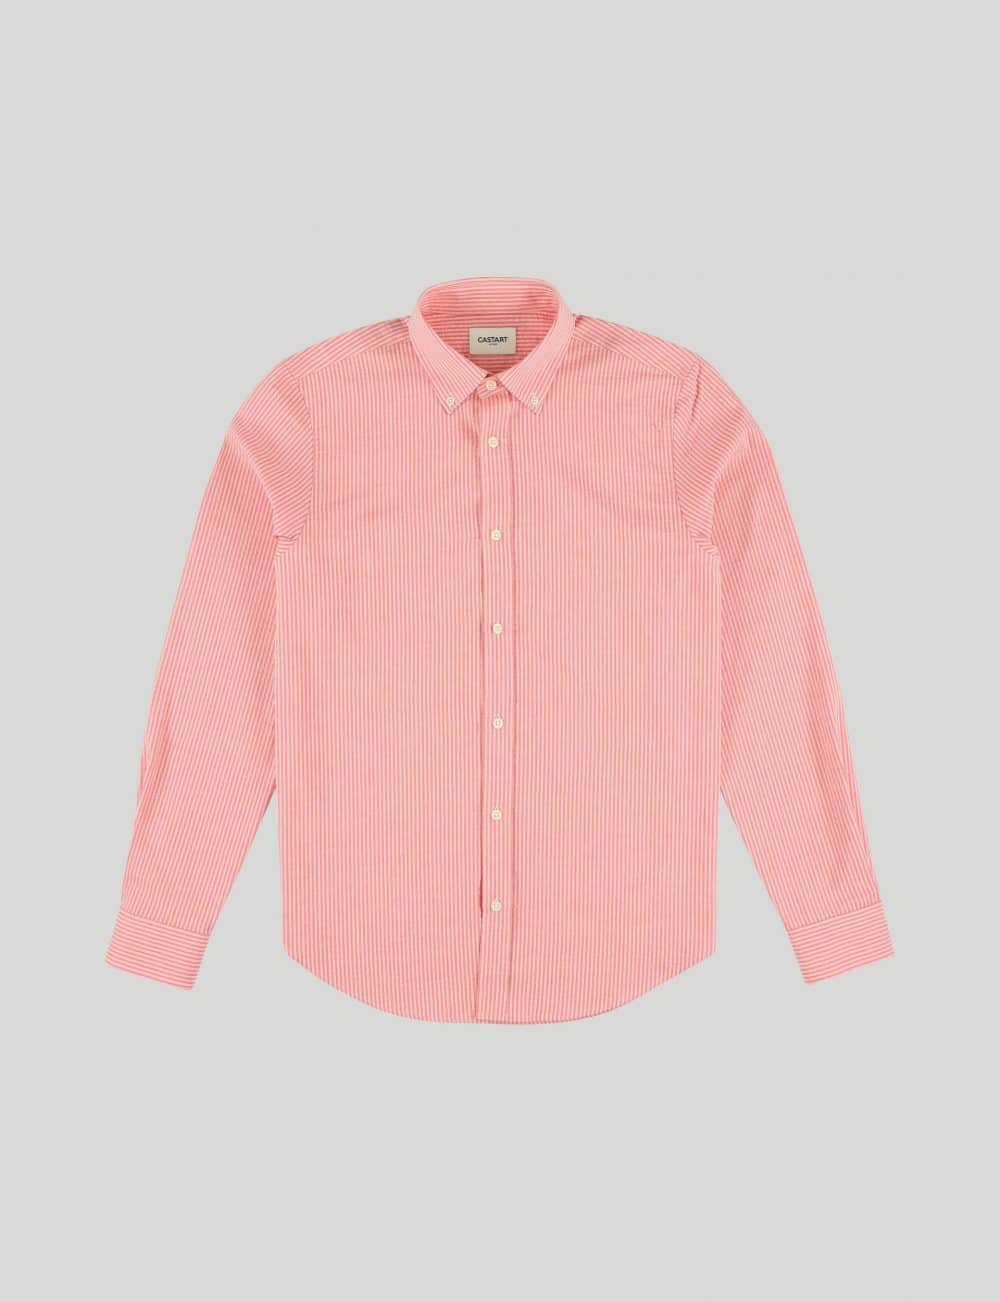 Castart - Burro's Tail Shirt - Salmon